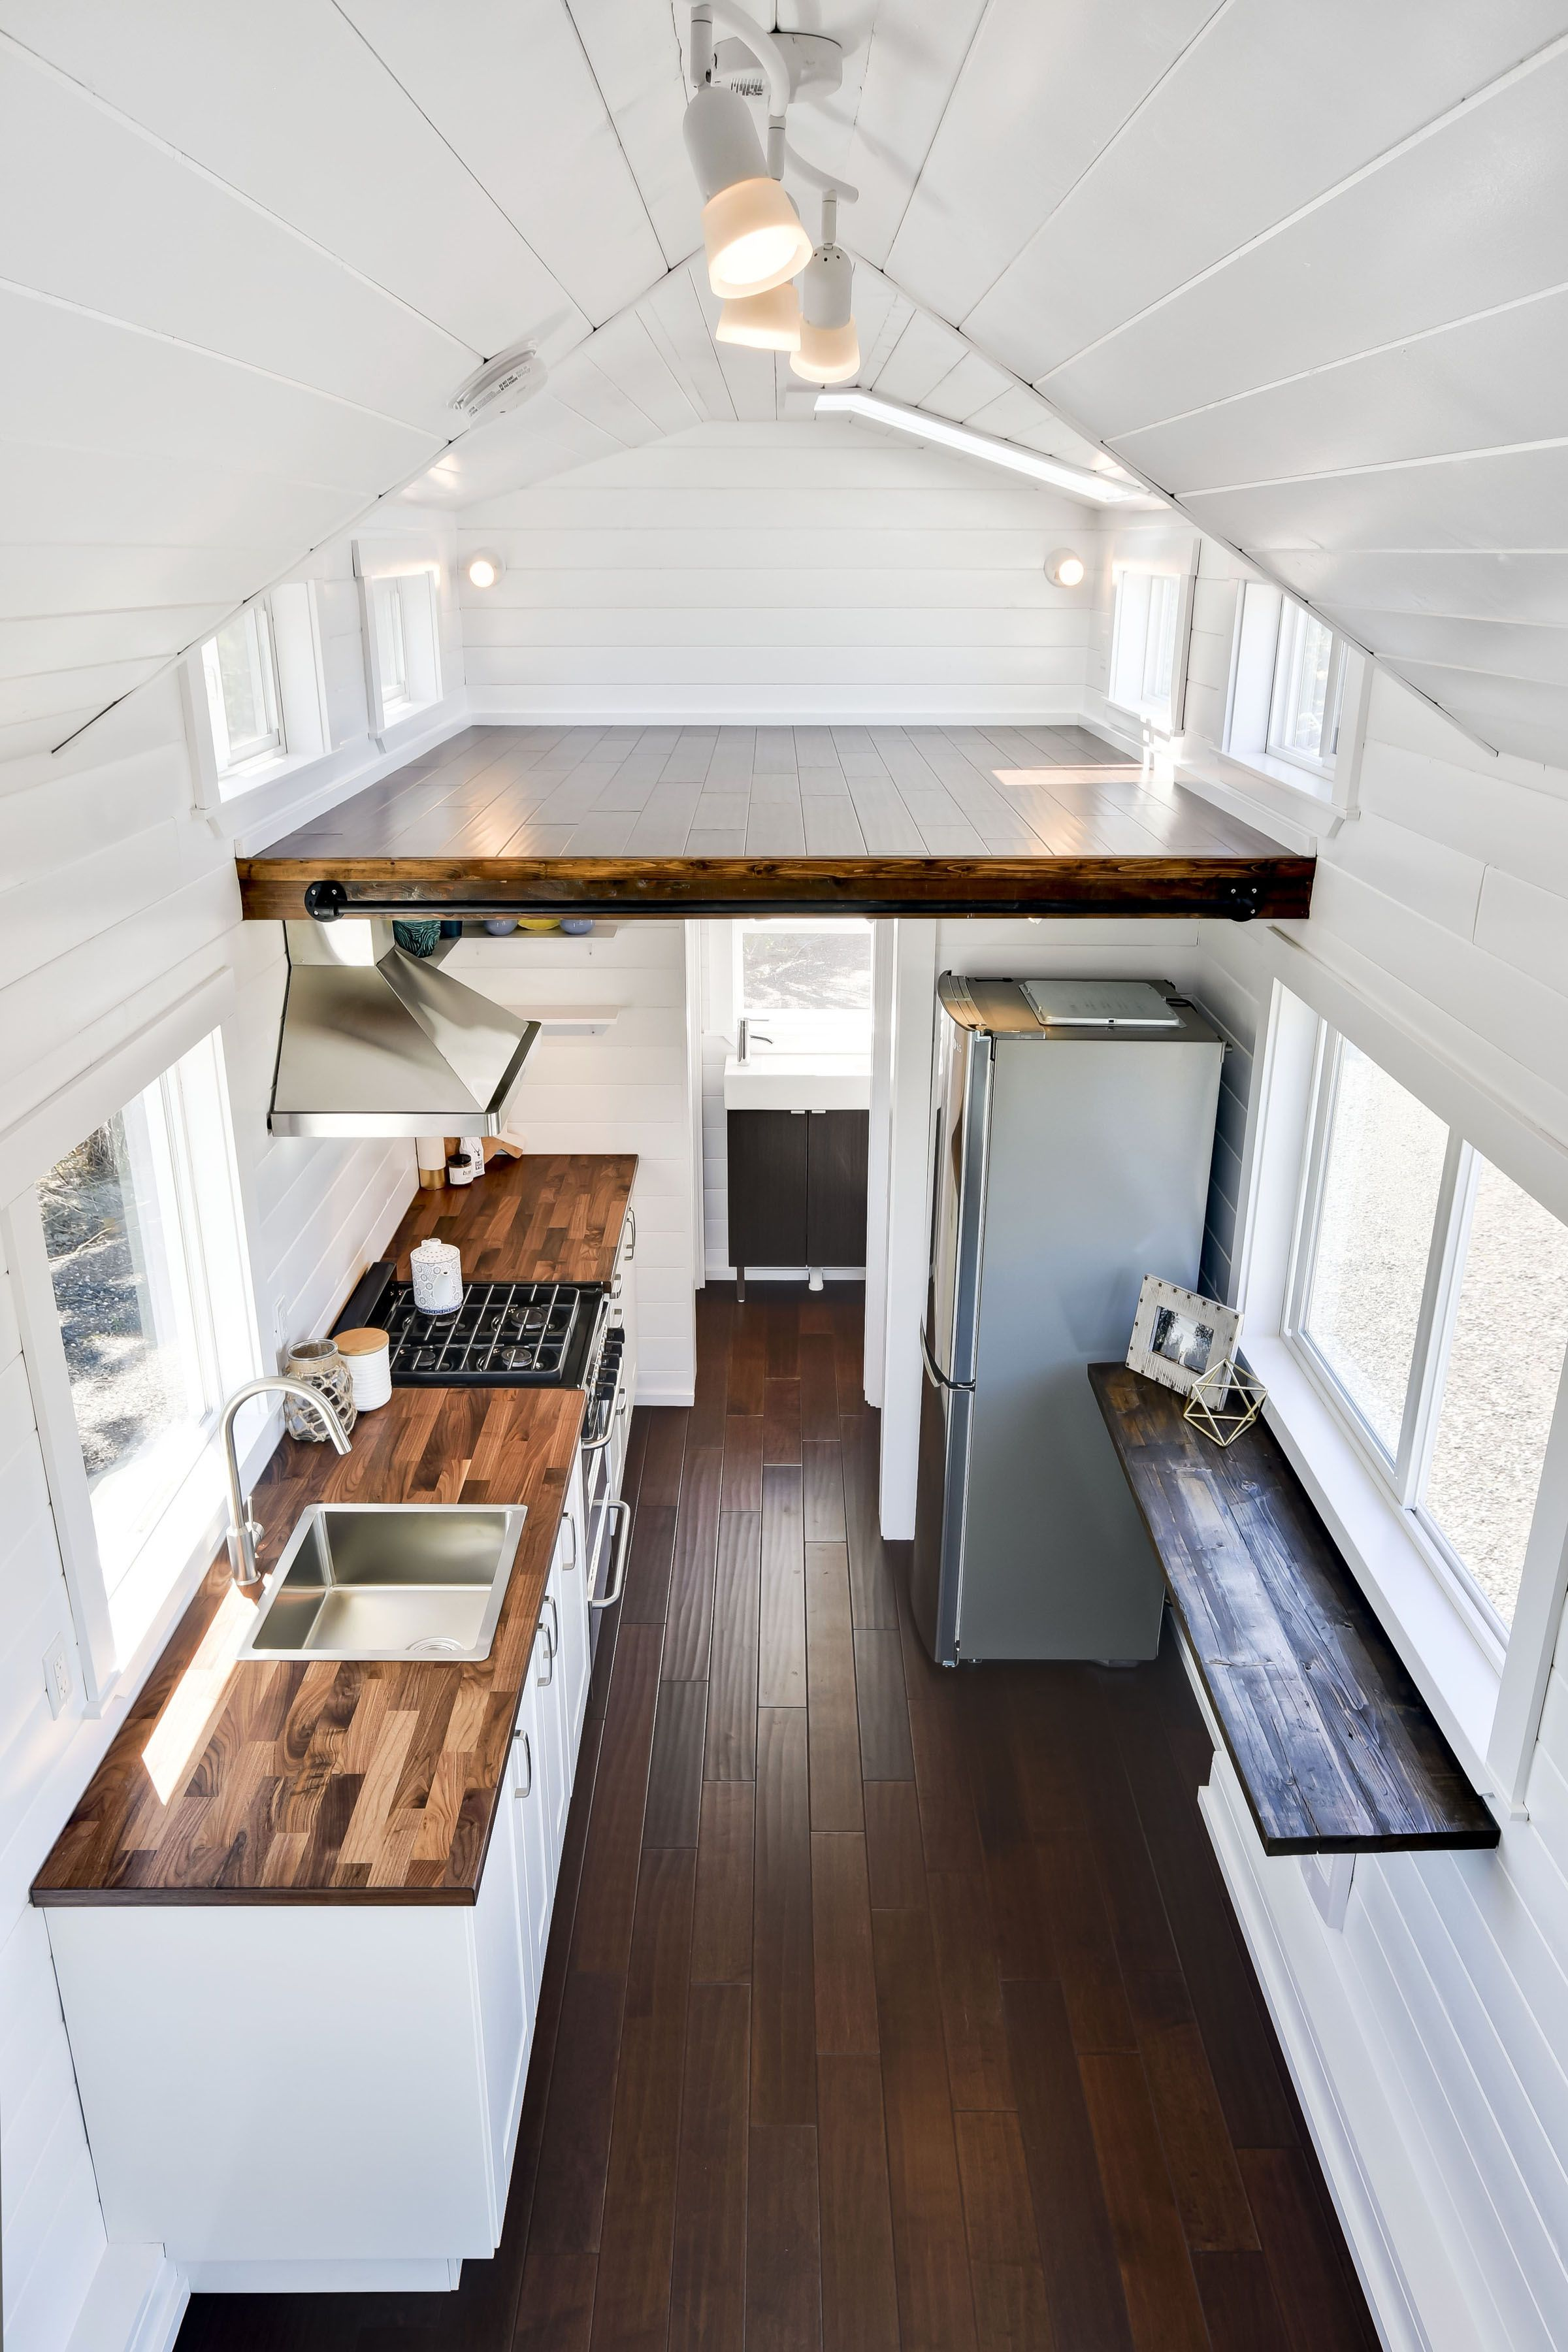 Superieur Love The Full Size Appliances And Layout Tiny House Kitchens, Tiny House  Living, Home